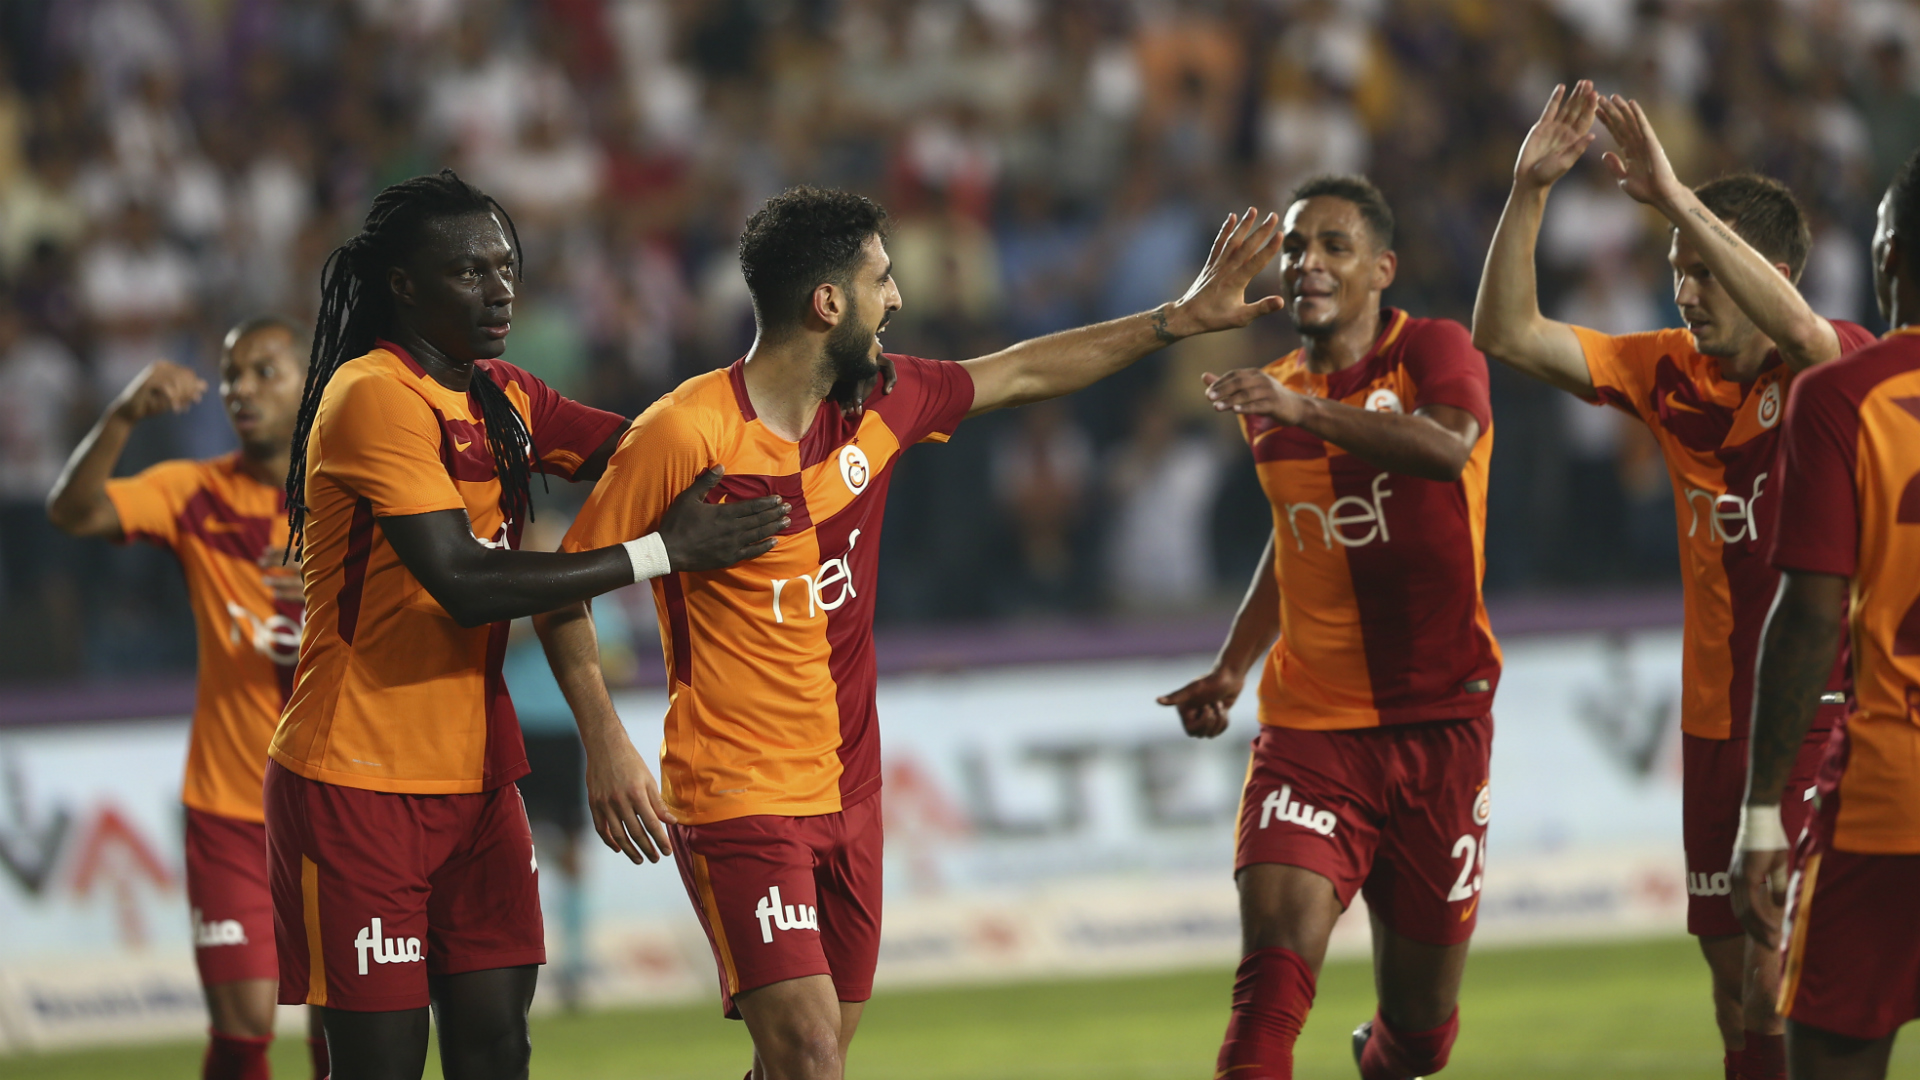 Galatasaray goal celebration vs Osmanlispor 08192017